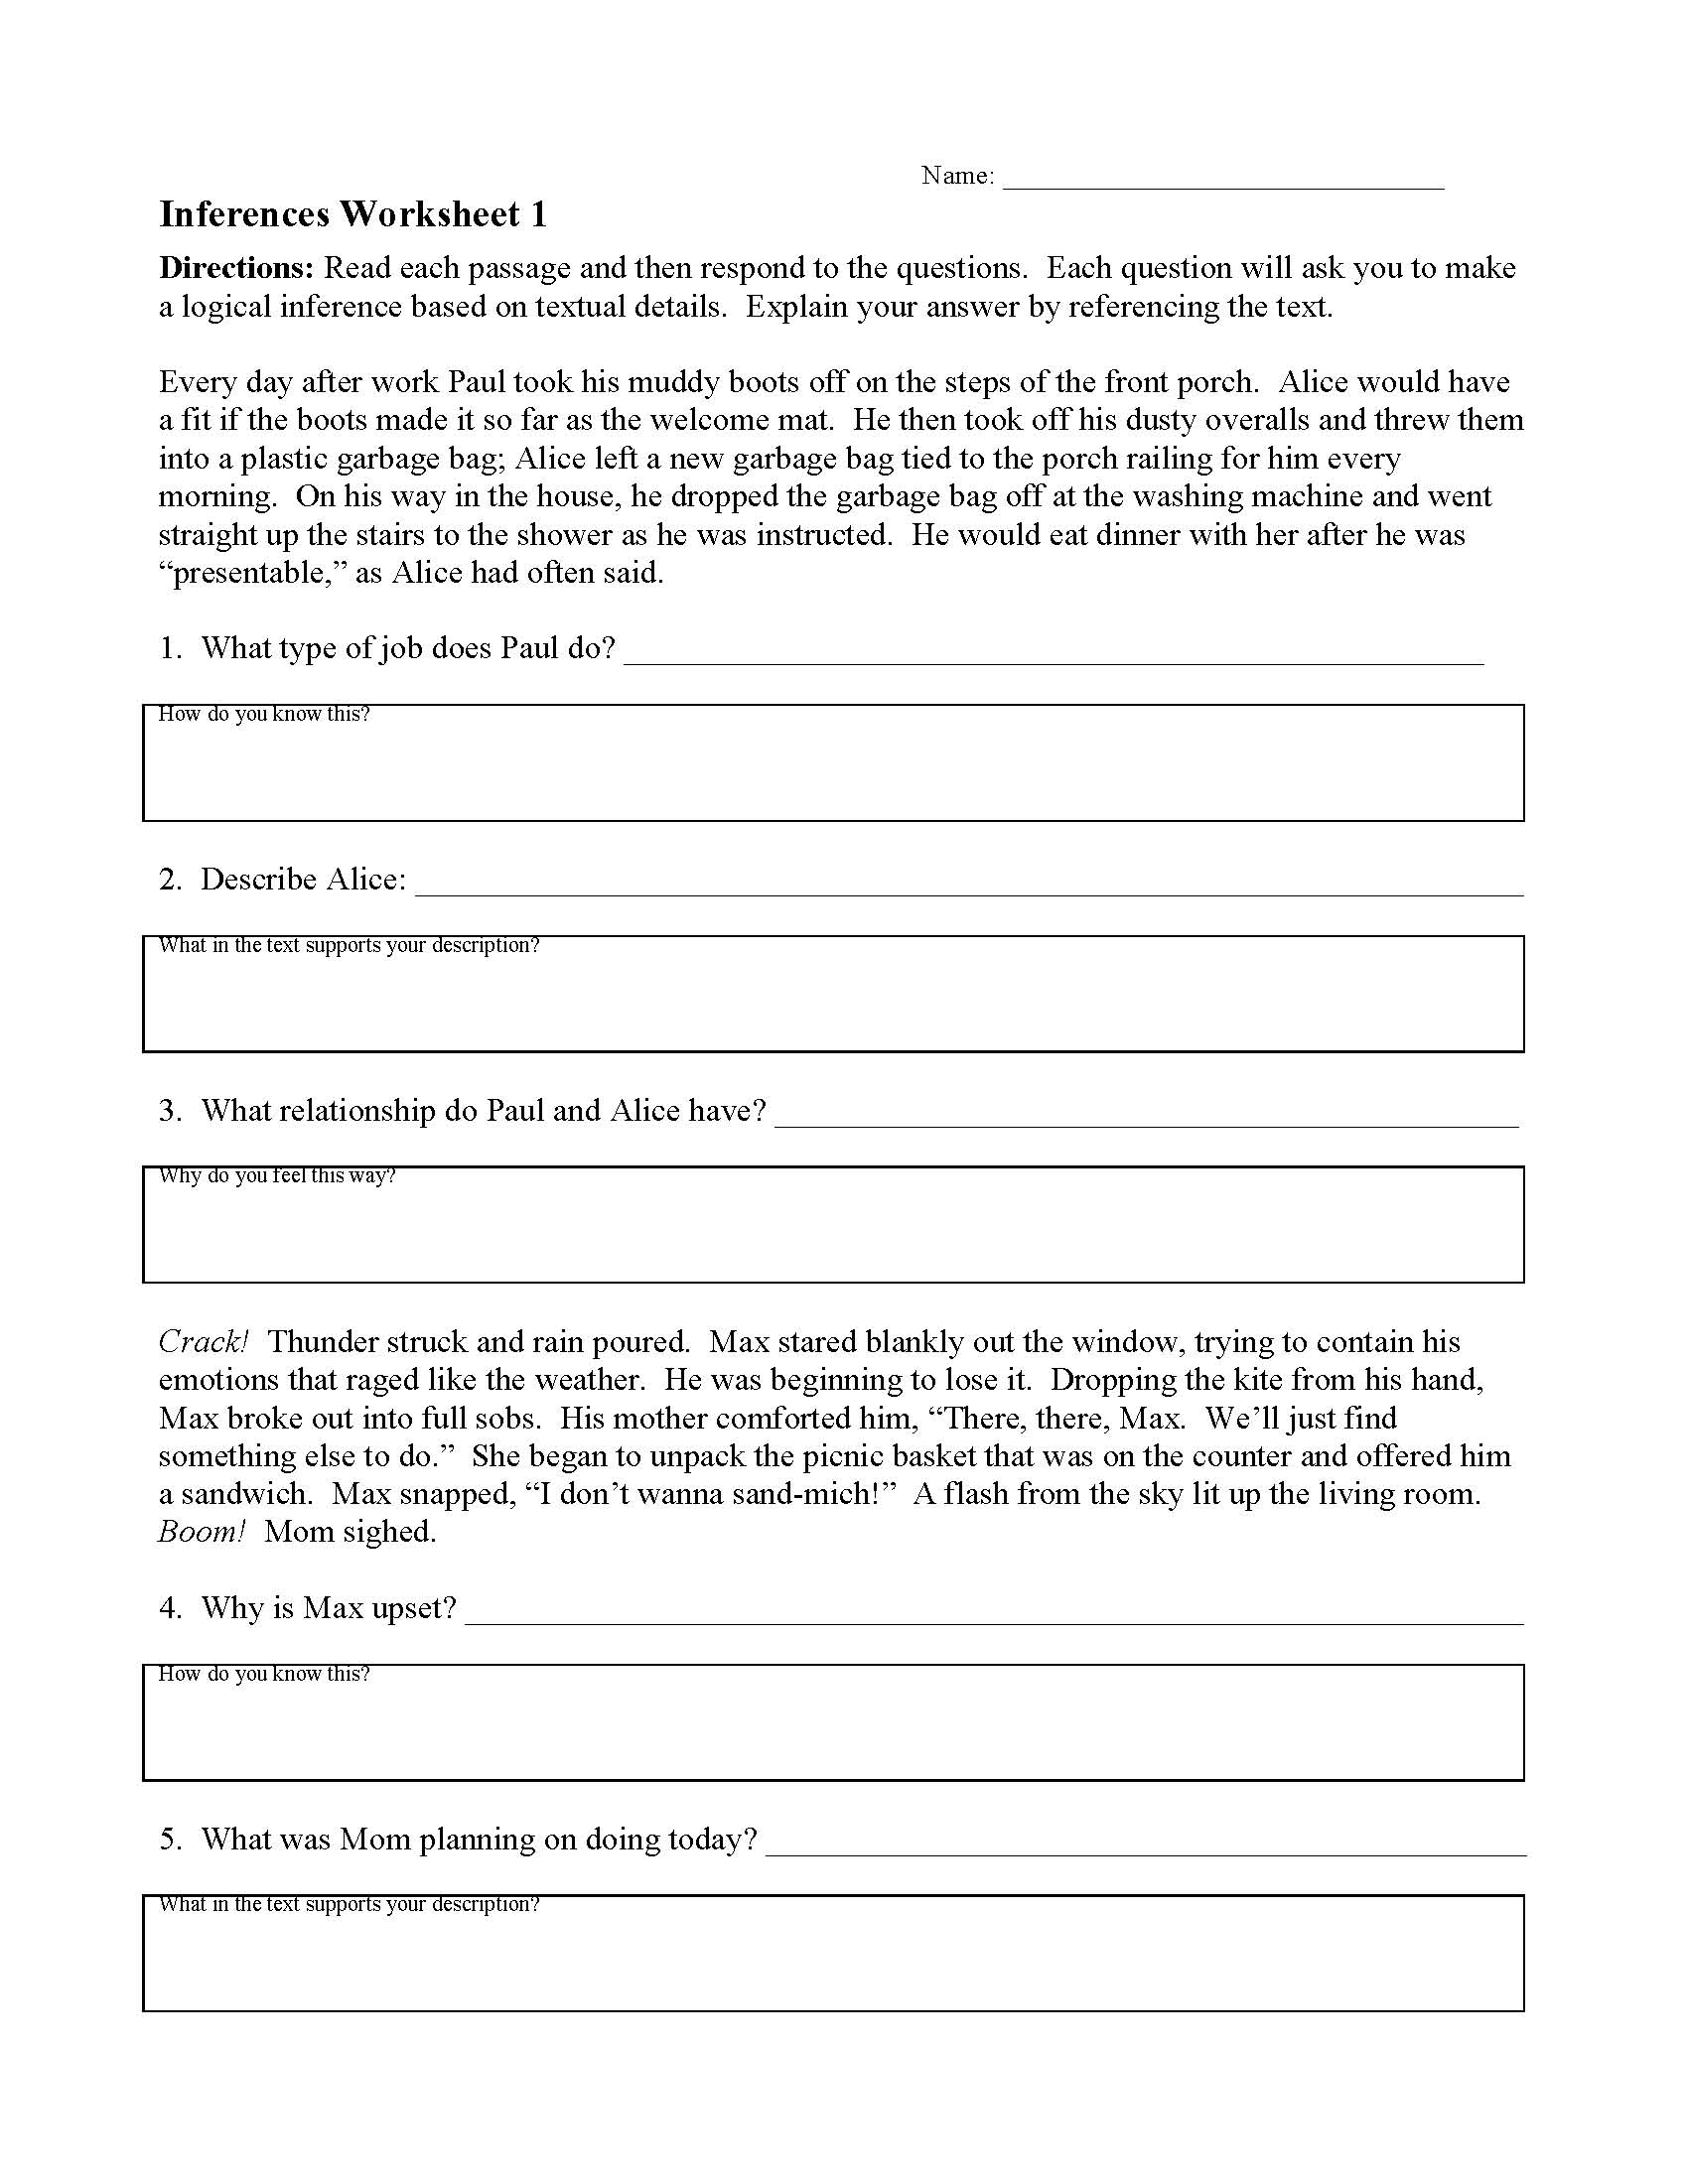 Inferences Worksheet 1  Preview